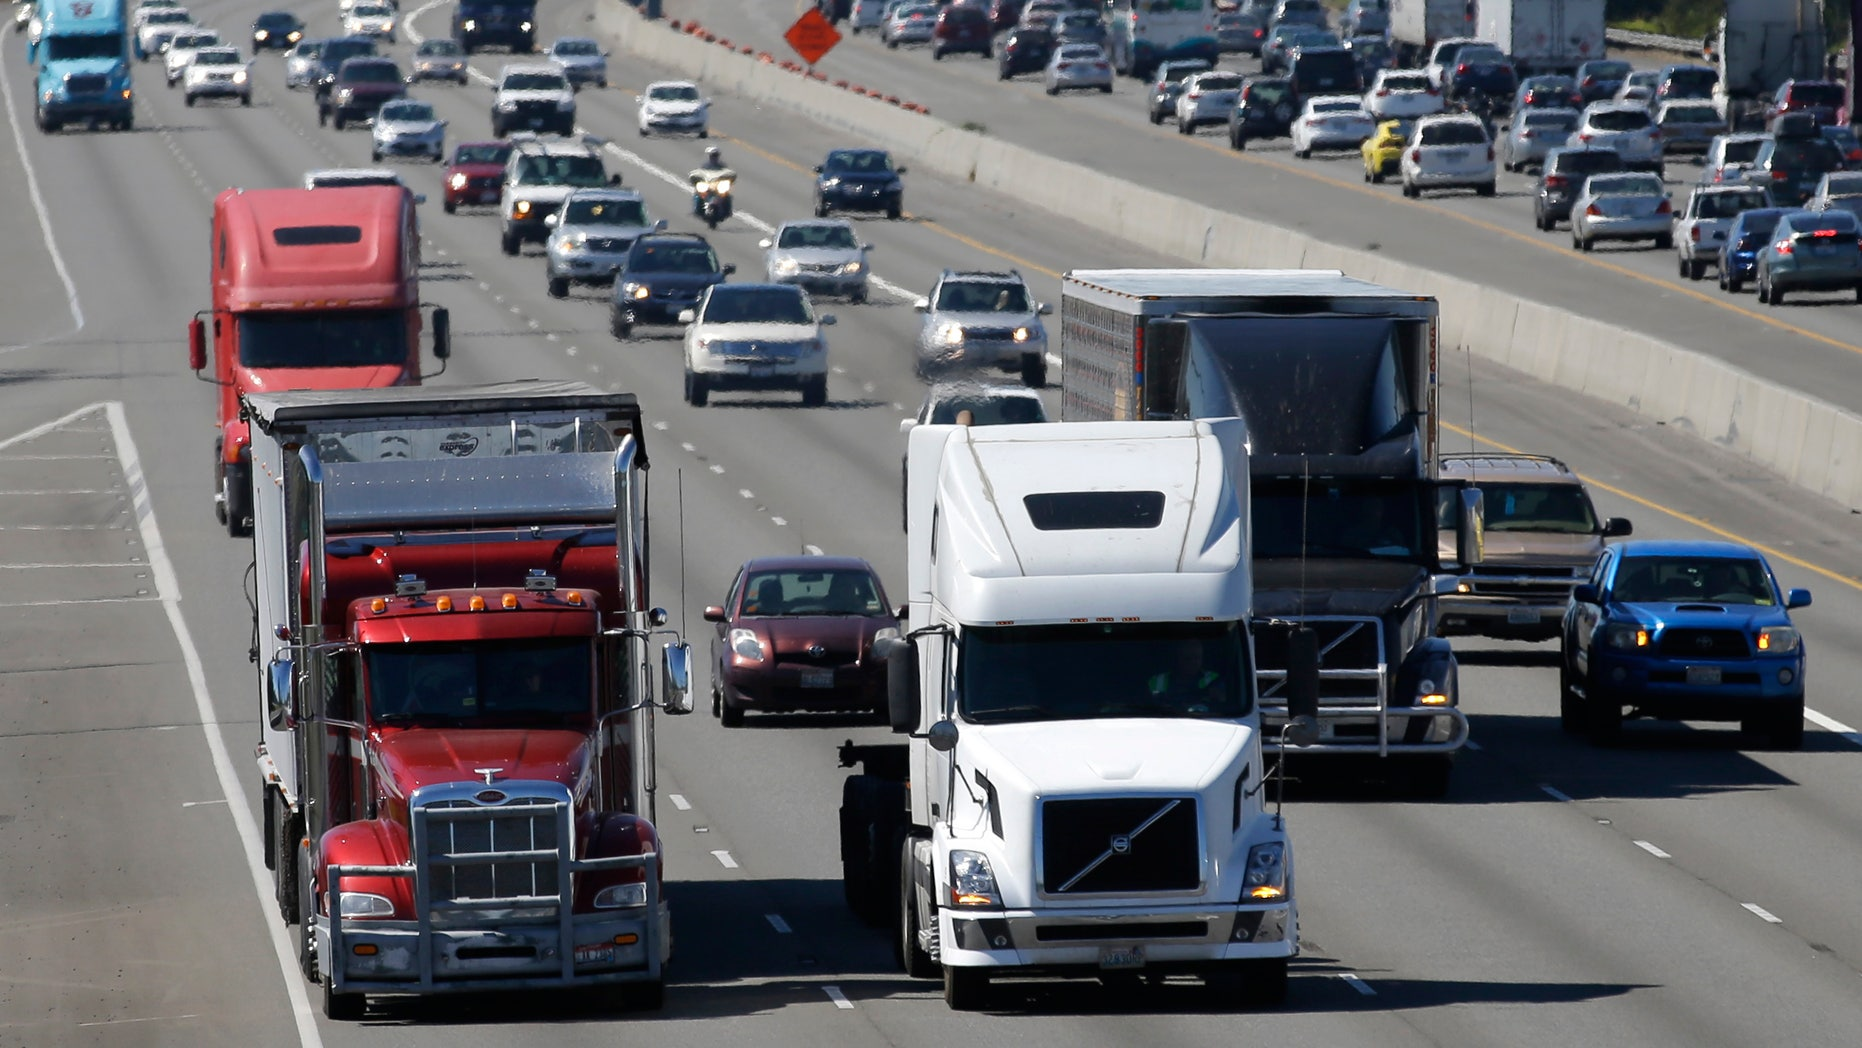 FILE - In this Wednesday, Aug. 24, 2016, file photo, truck and automobile traffic mix on Interstate 5, headed north through Fife, Wash., near the Port of Tacoma. (AP Photo/Ted S. Warren, File)